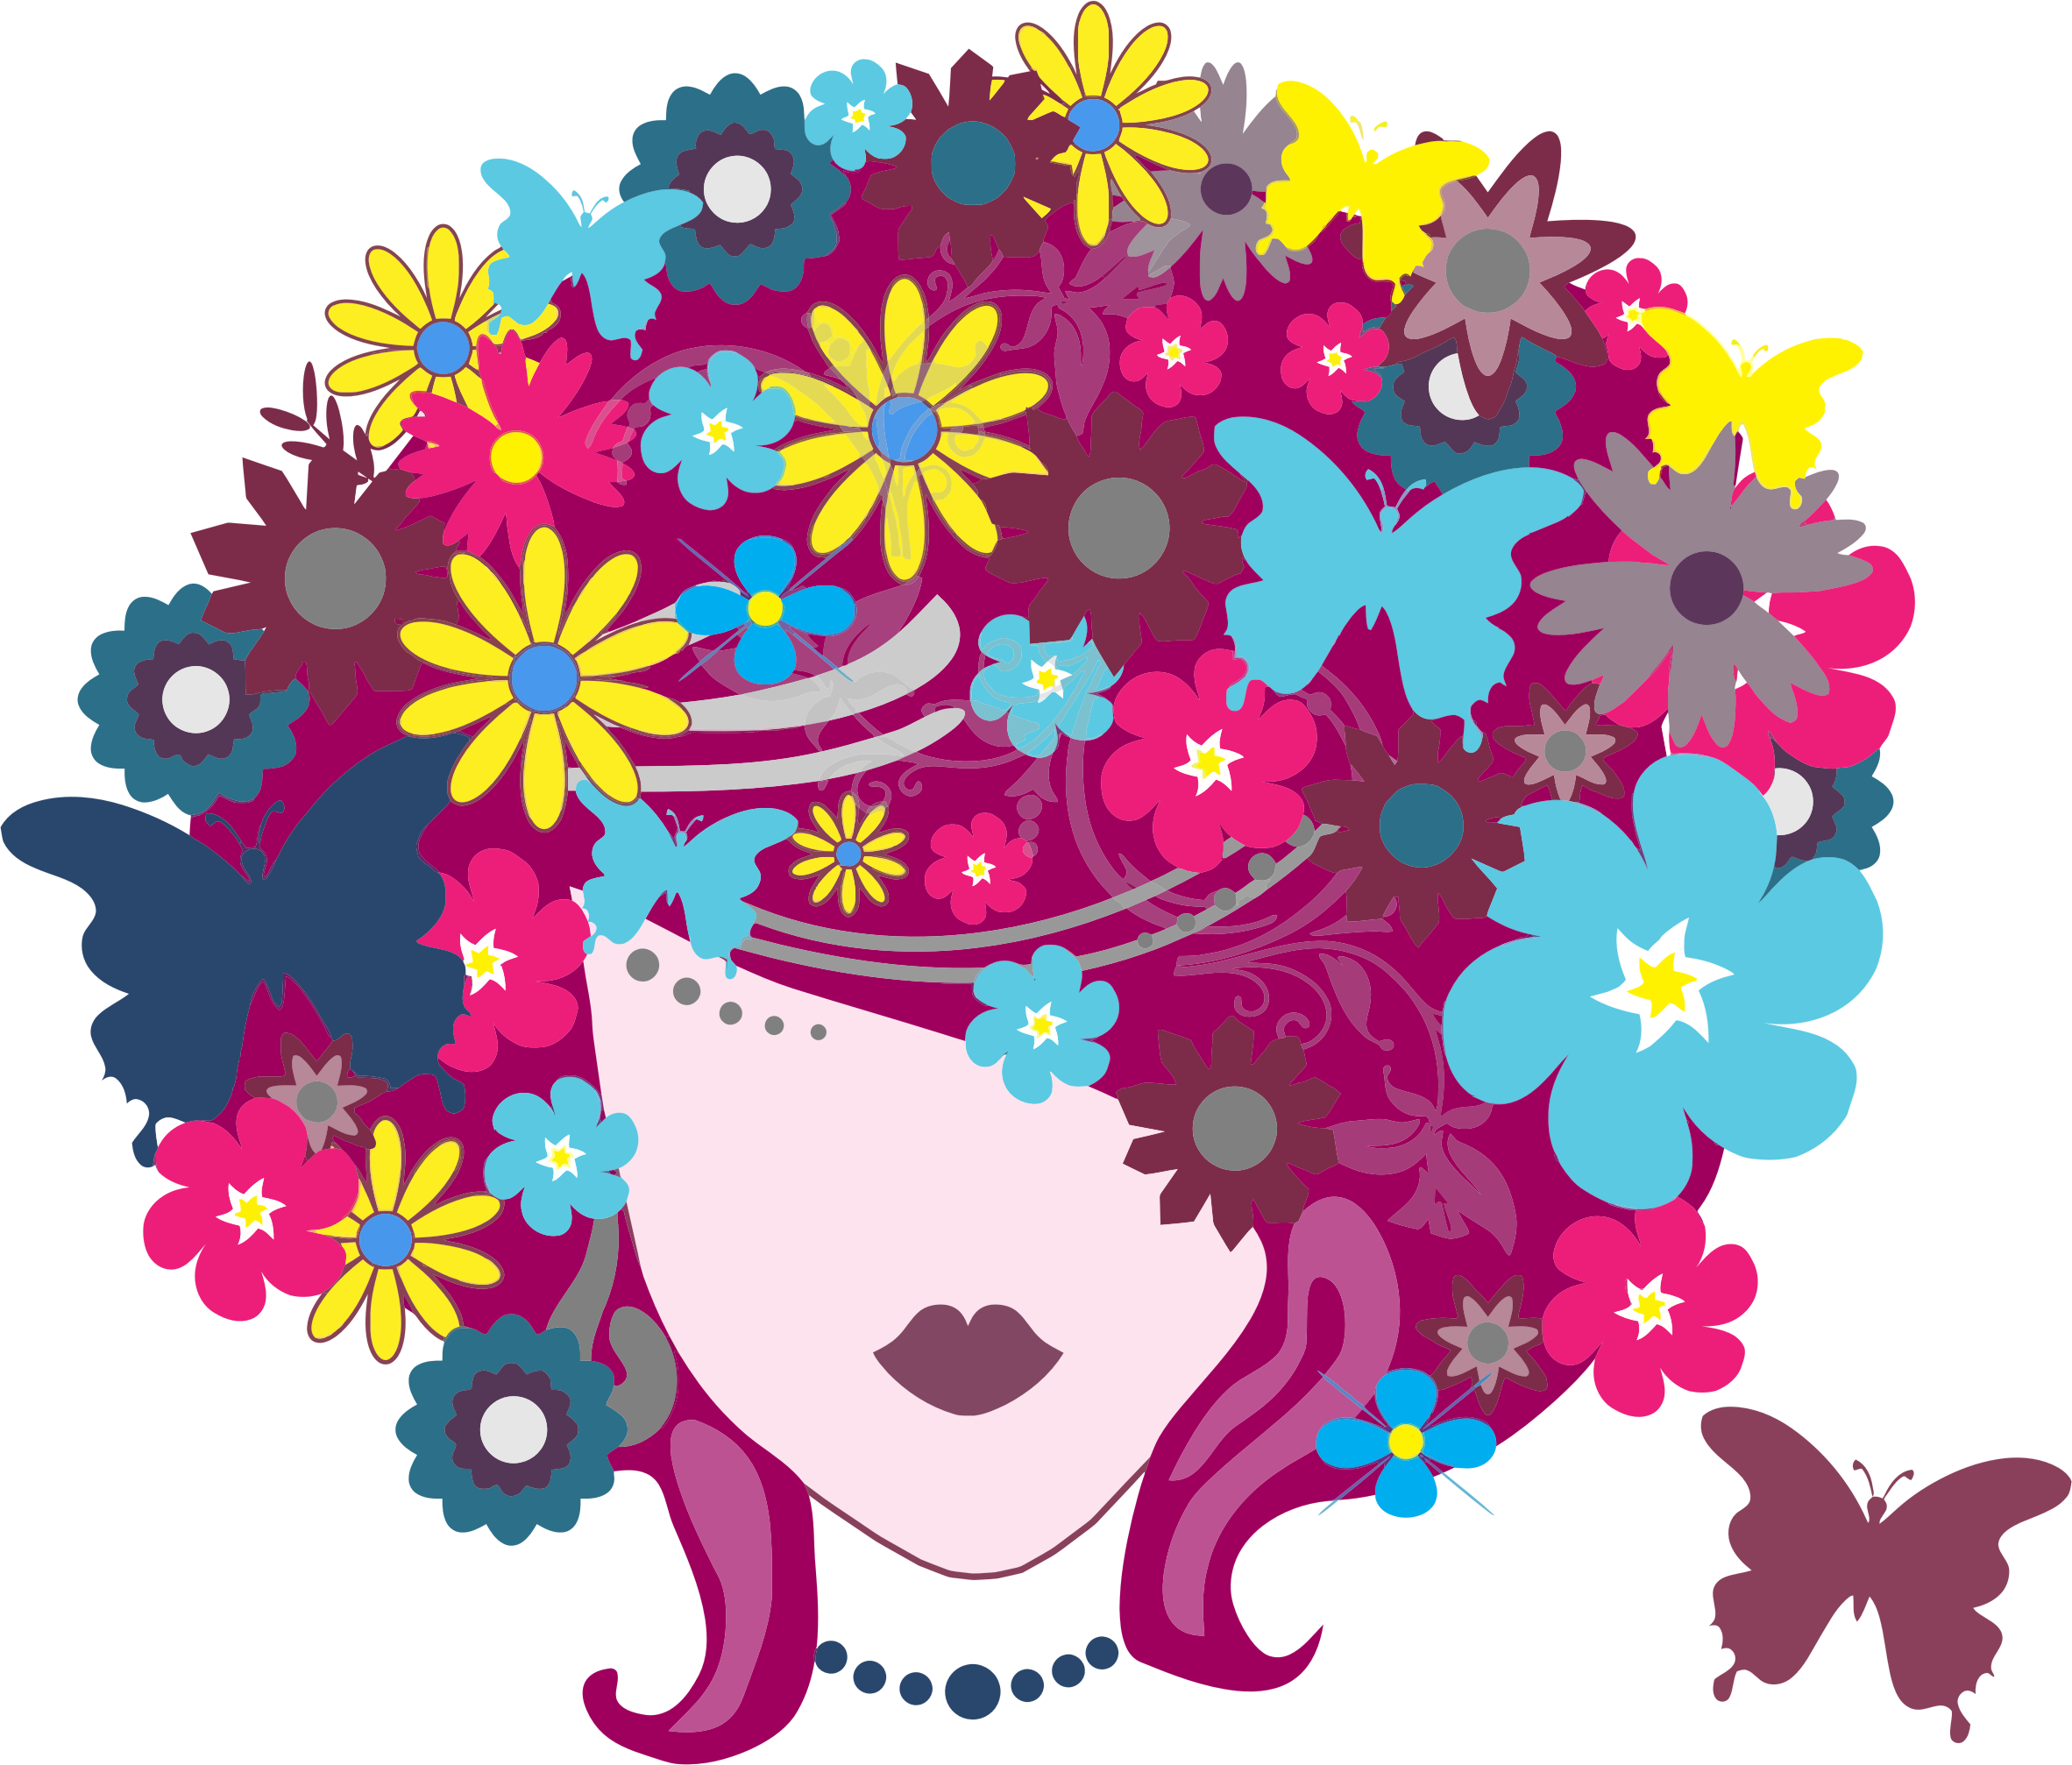 Hair flower png. Floral butterfly woman icons